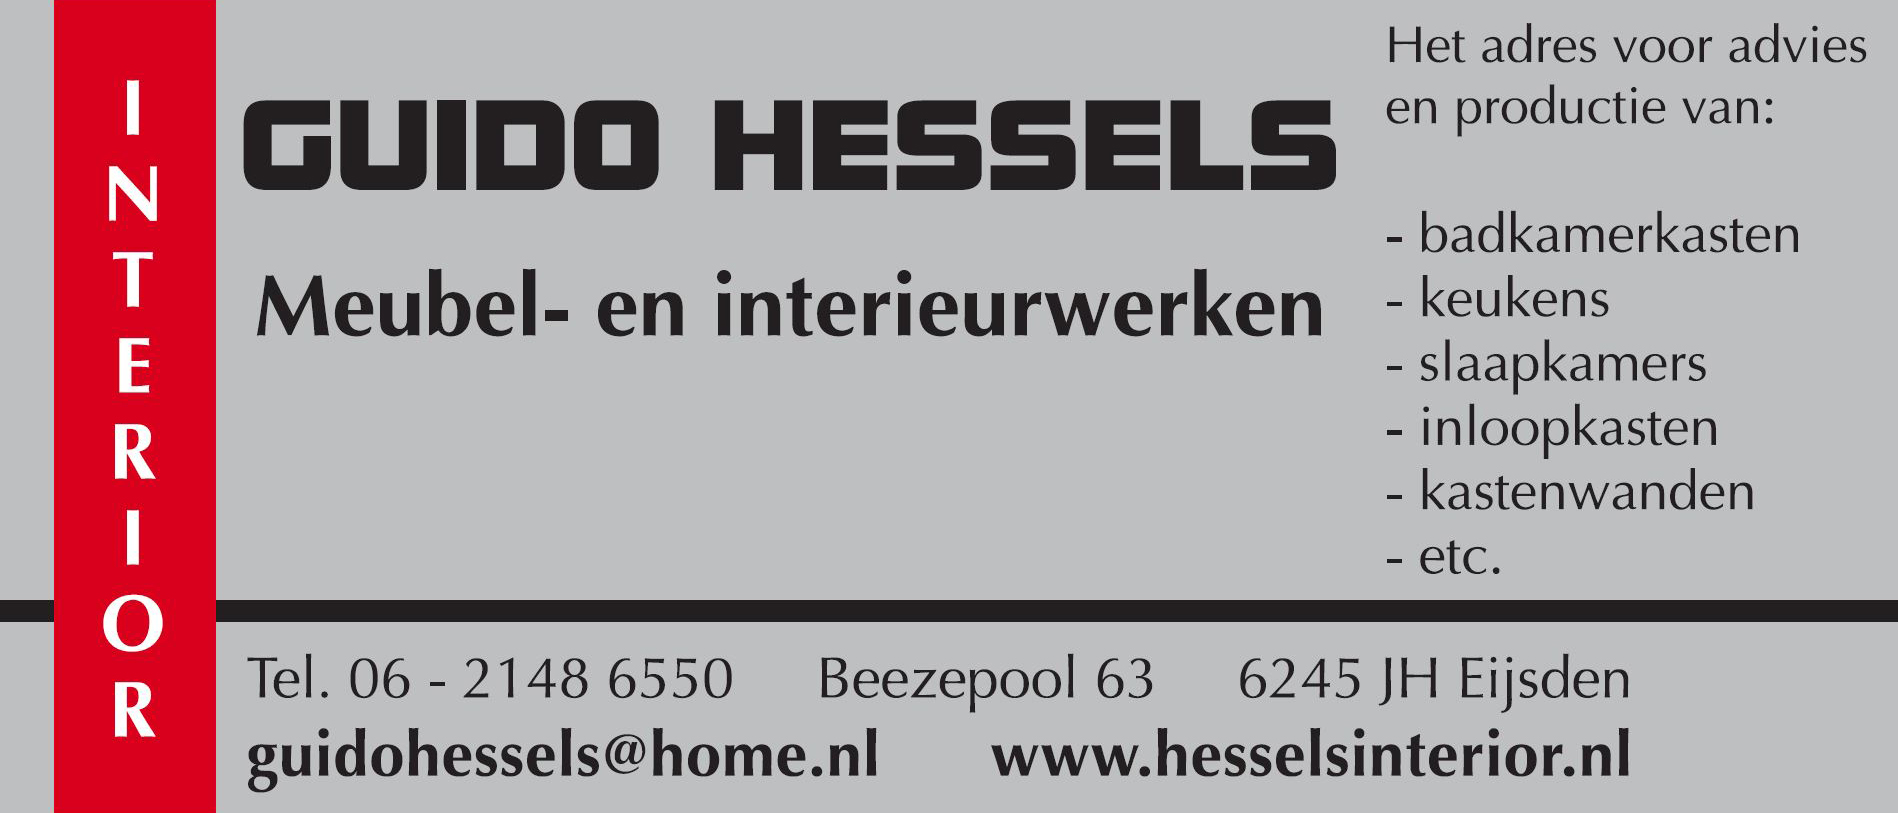 Guido Hessels is sponsor van DVC '16